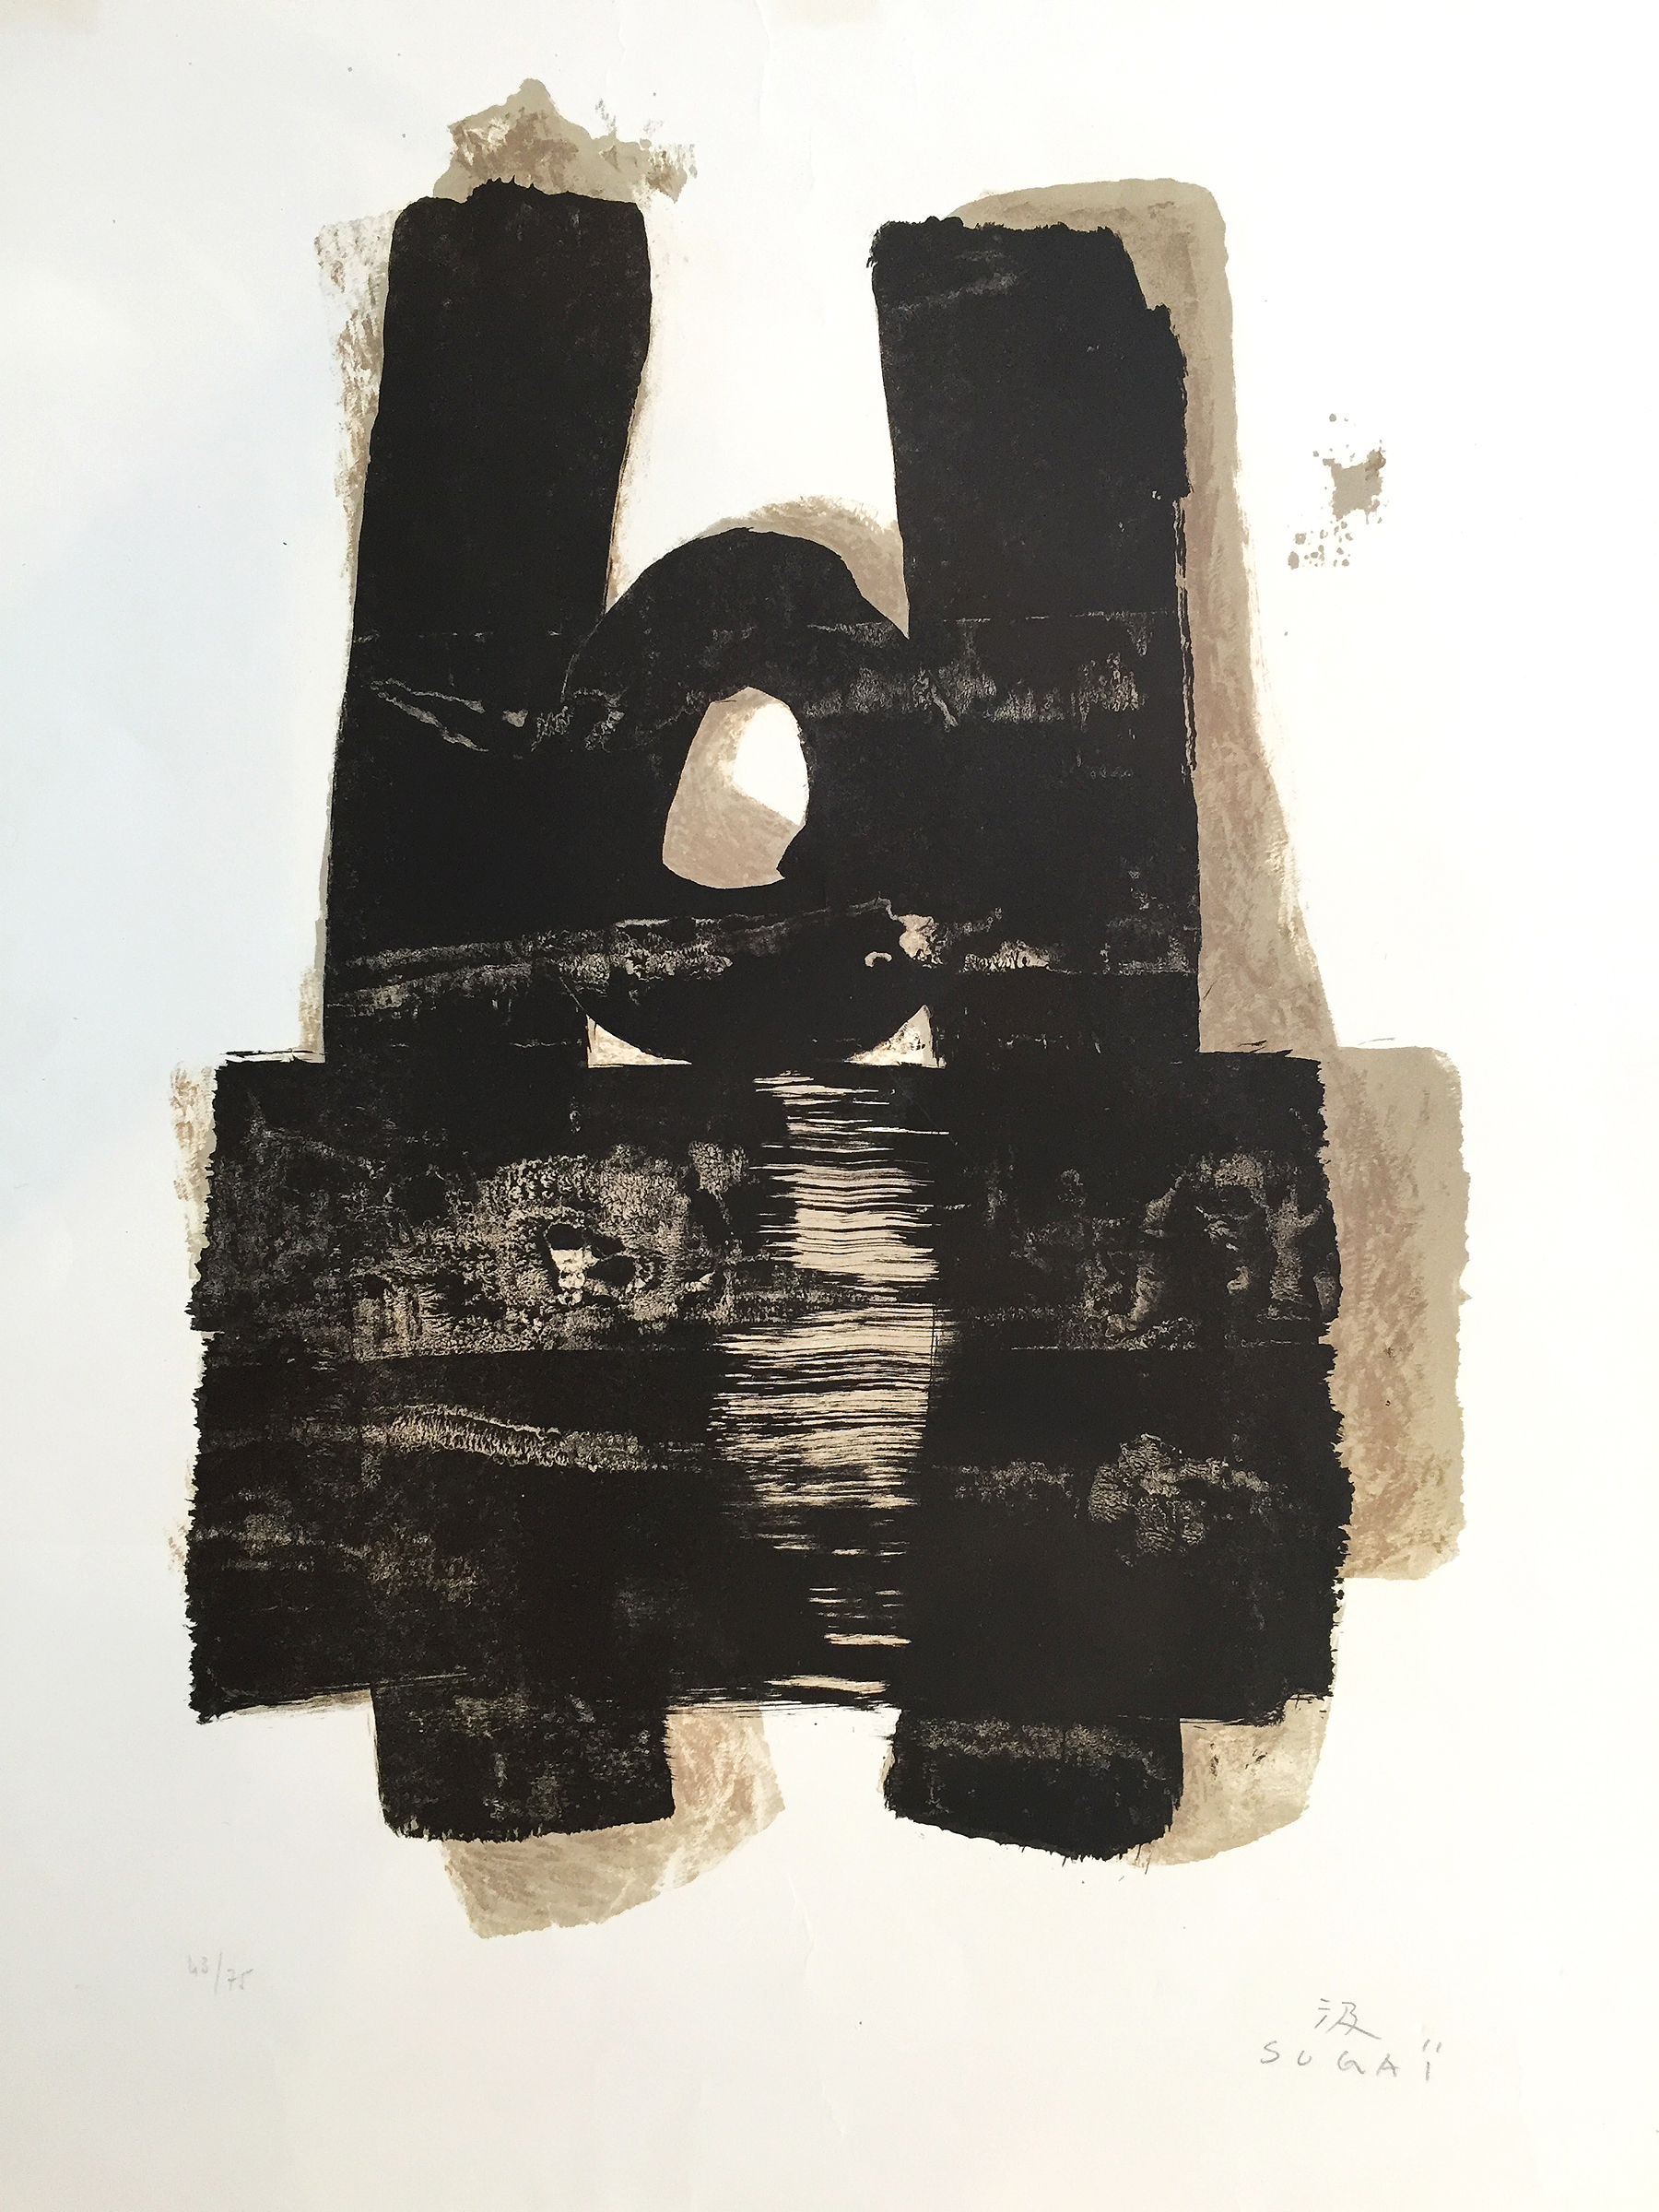 Hiver No. 4 (ed. 43 of 75), 1958, 19.75 x 25.75 inches, Lithograph (Sold)